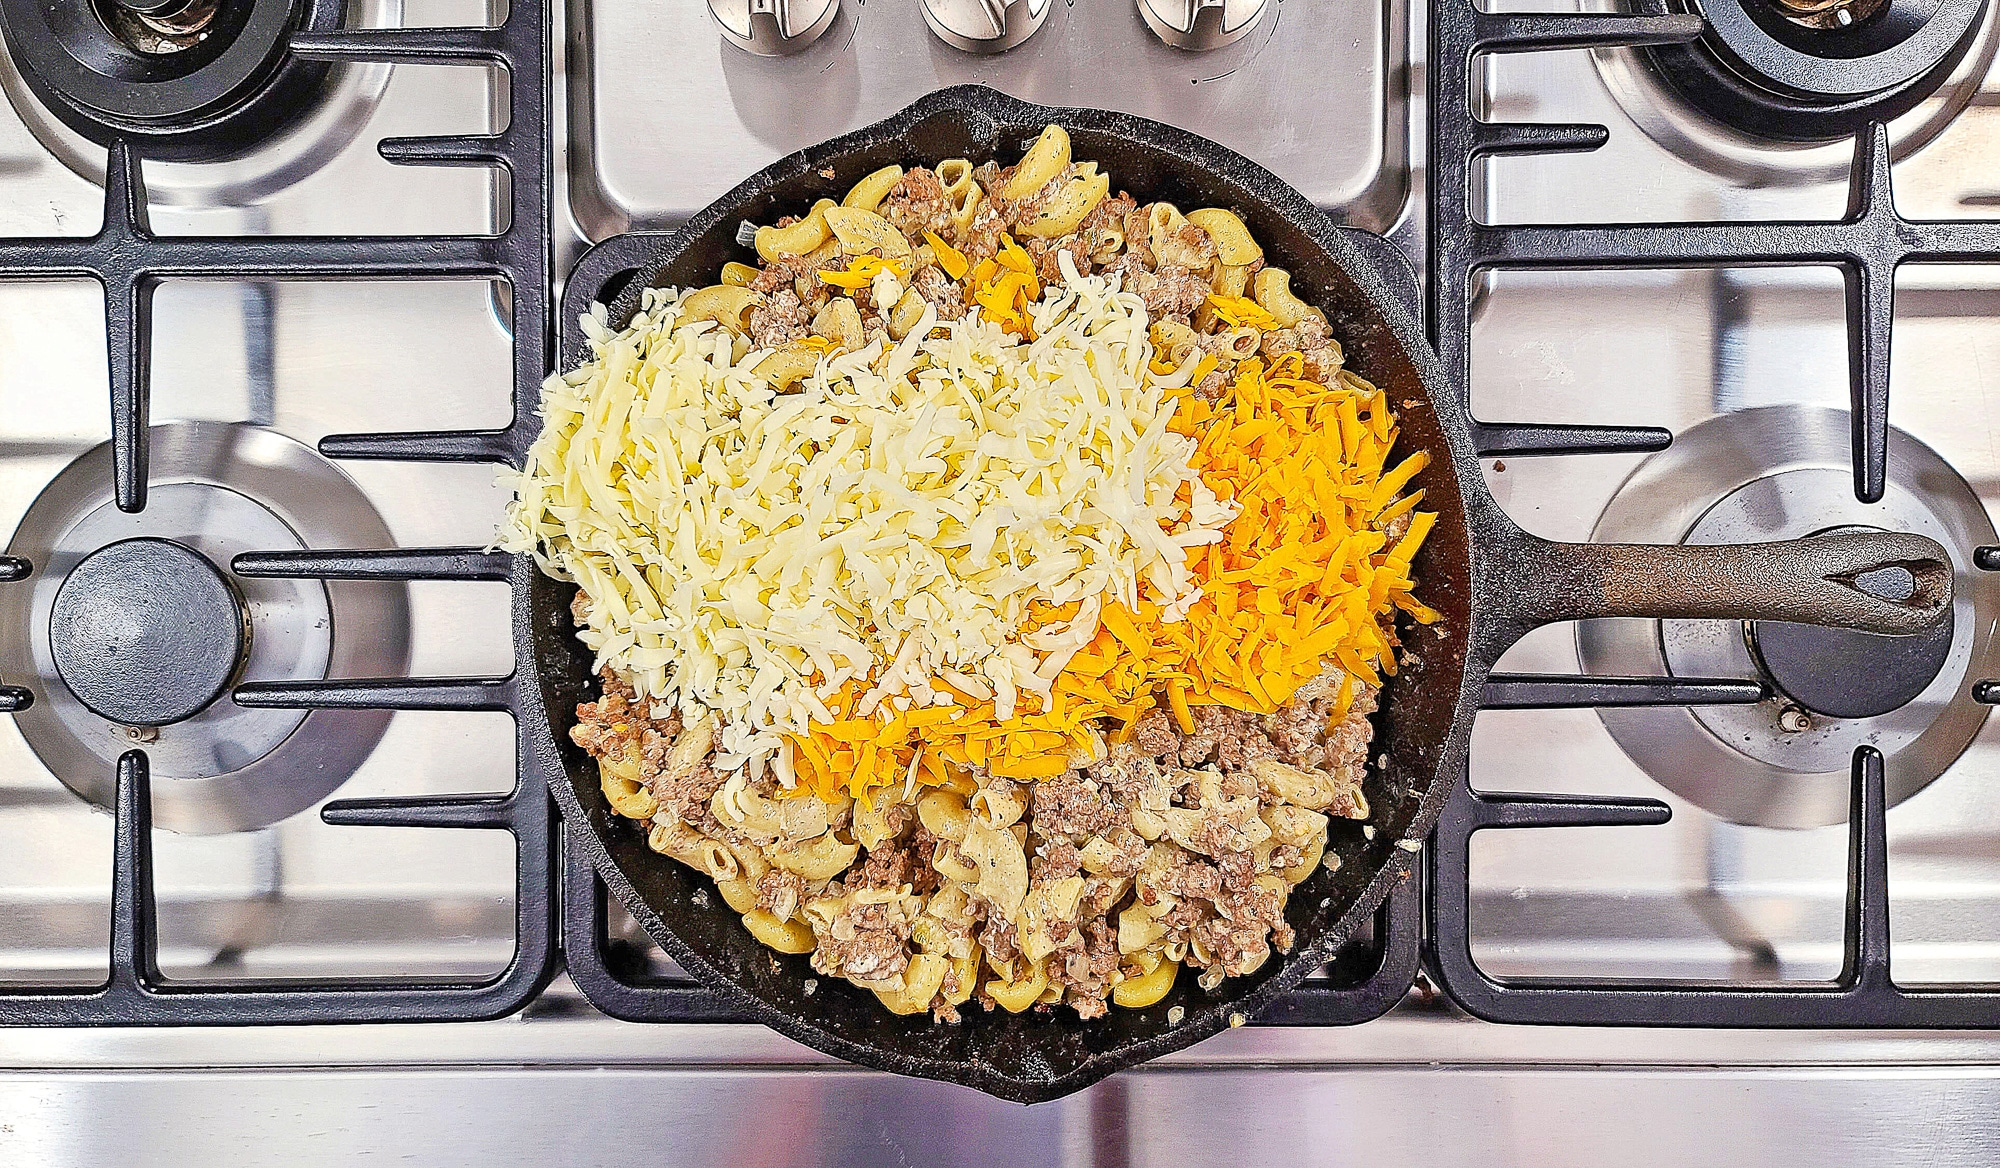 macaroni and cheese with shredded cheese in cast iron skillet